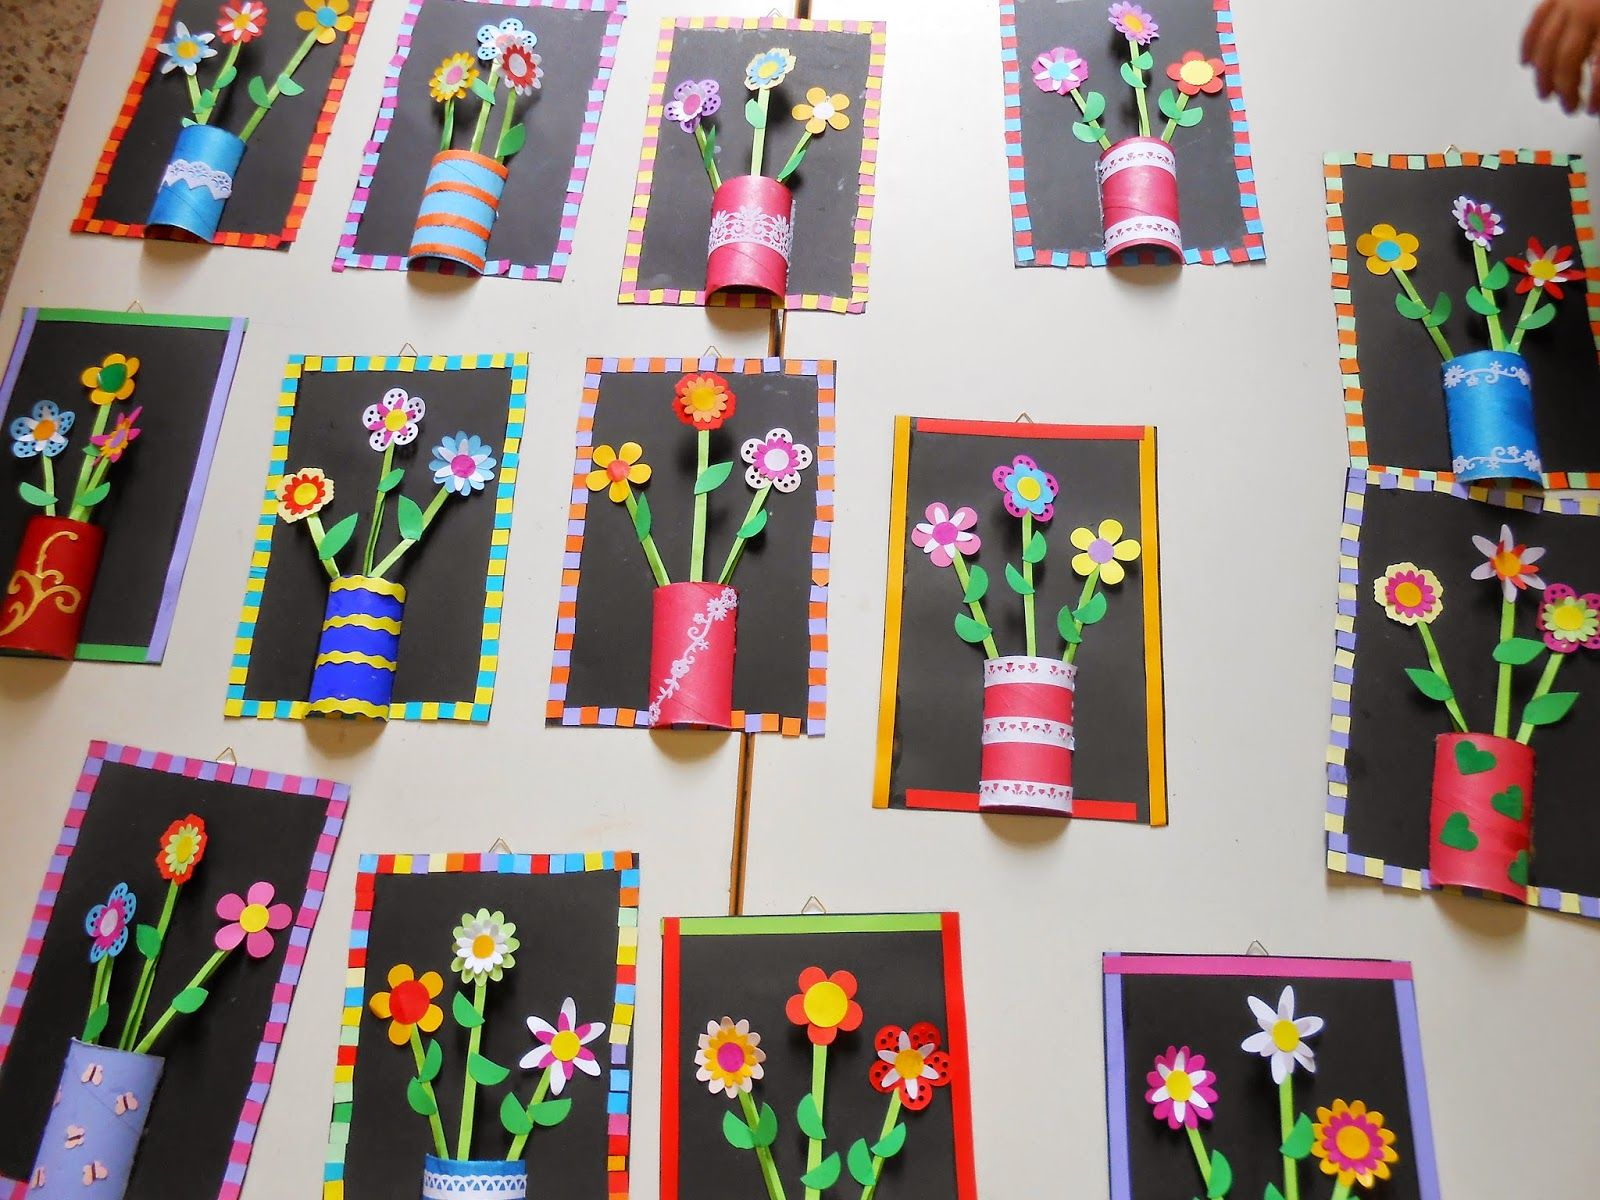 Pin by Sarah Johanski on Kid ideas | Mothers day crafts